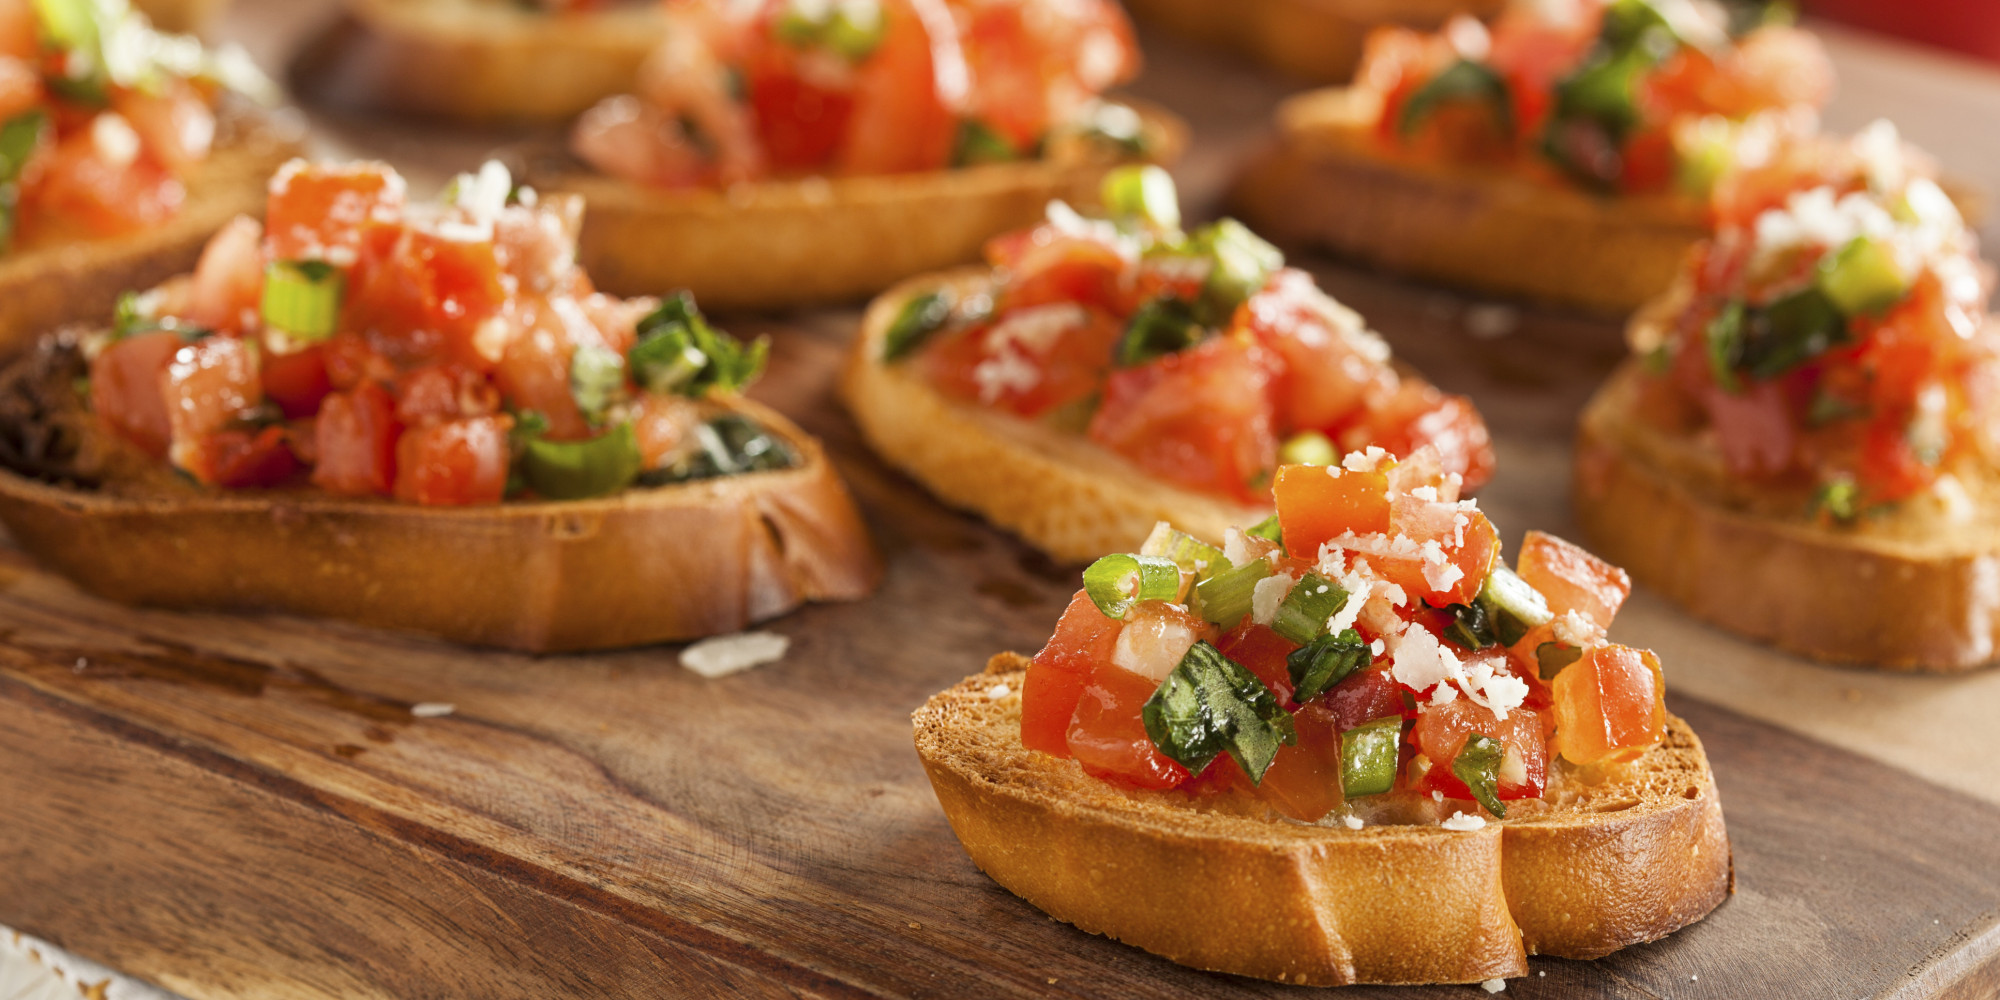 bruschetta recipe italian tomato bruschetta huffpost. Black Bedroom Furniture Sets. Home Design Ideas